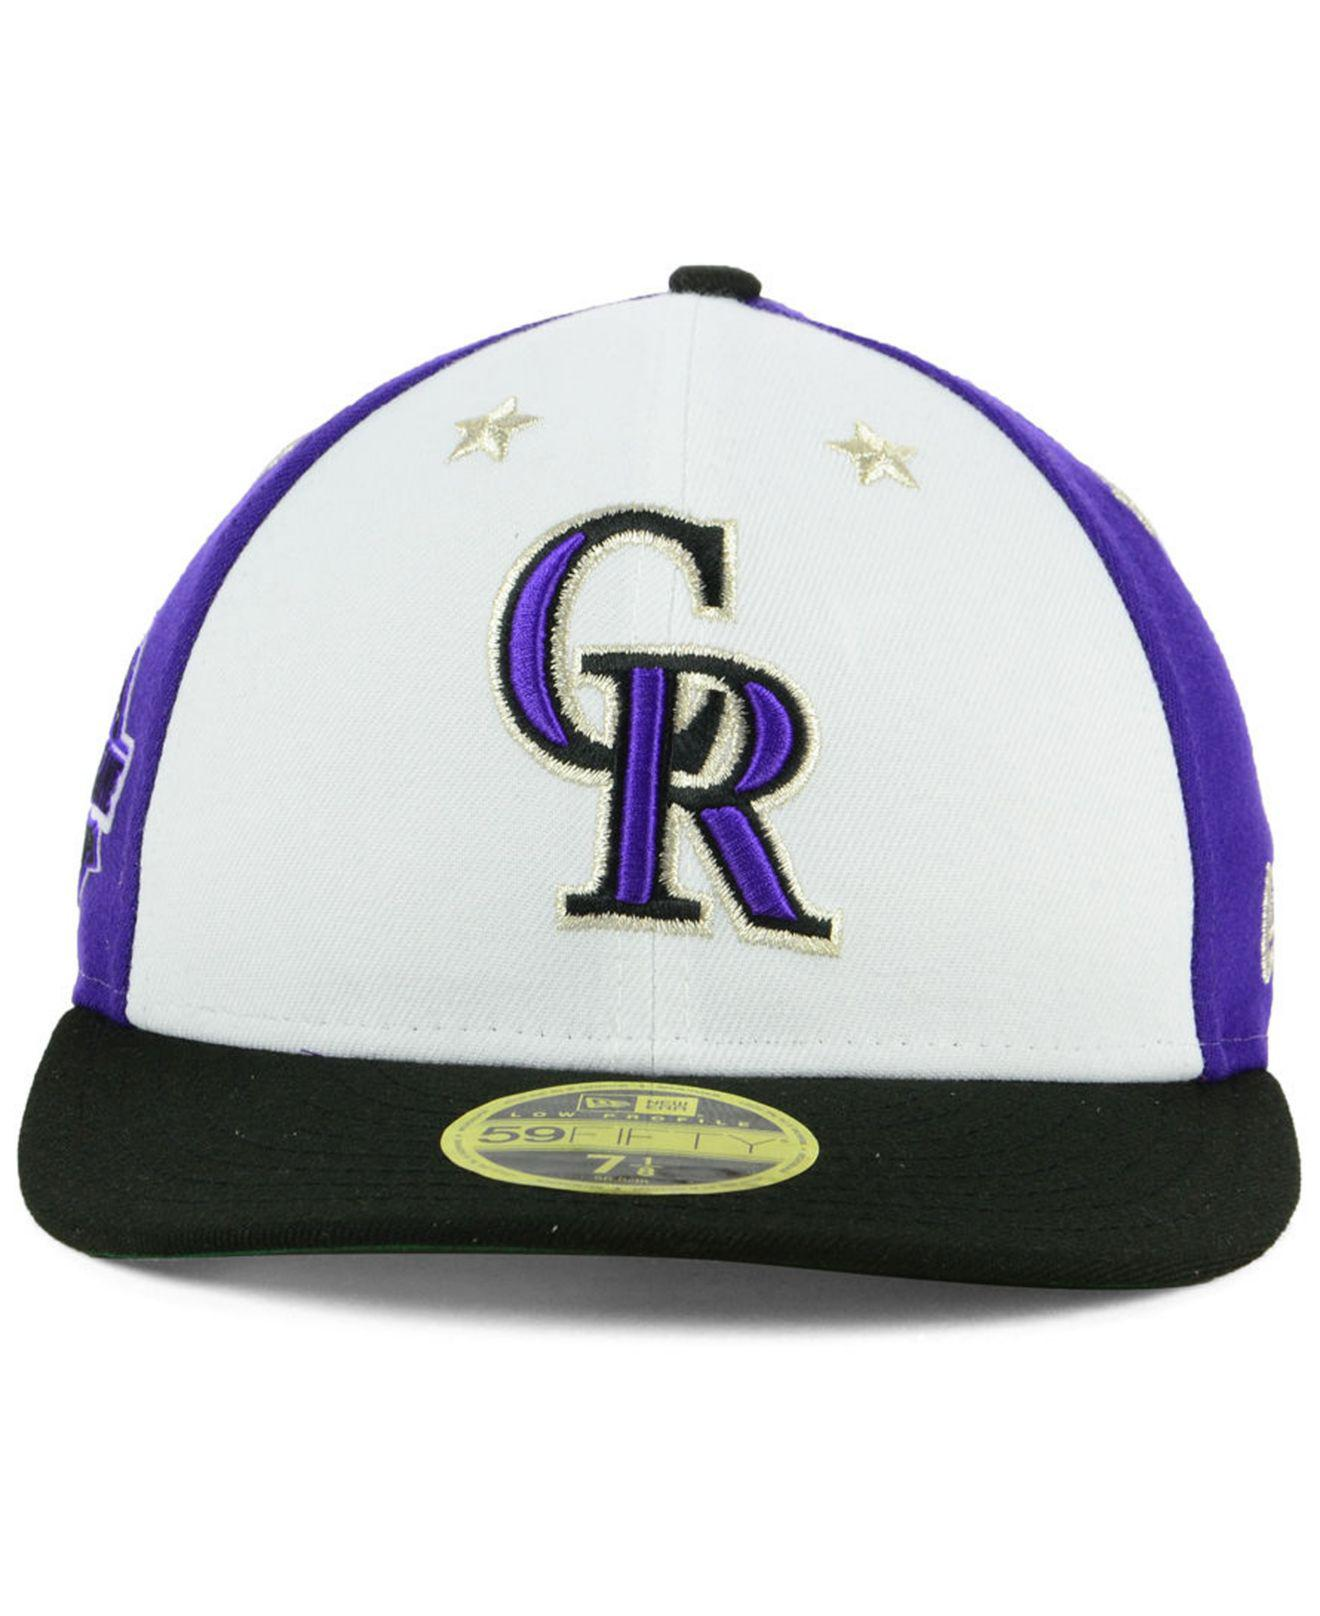 605ae74b51770 best price lyst ktz colorado rockies all star game patch low profile  59fifty fitted cap 2018